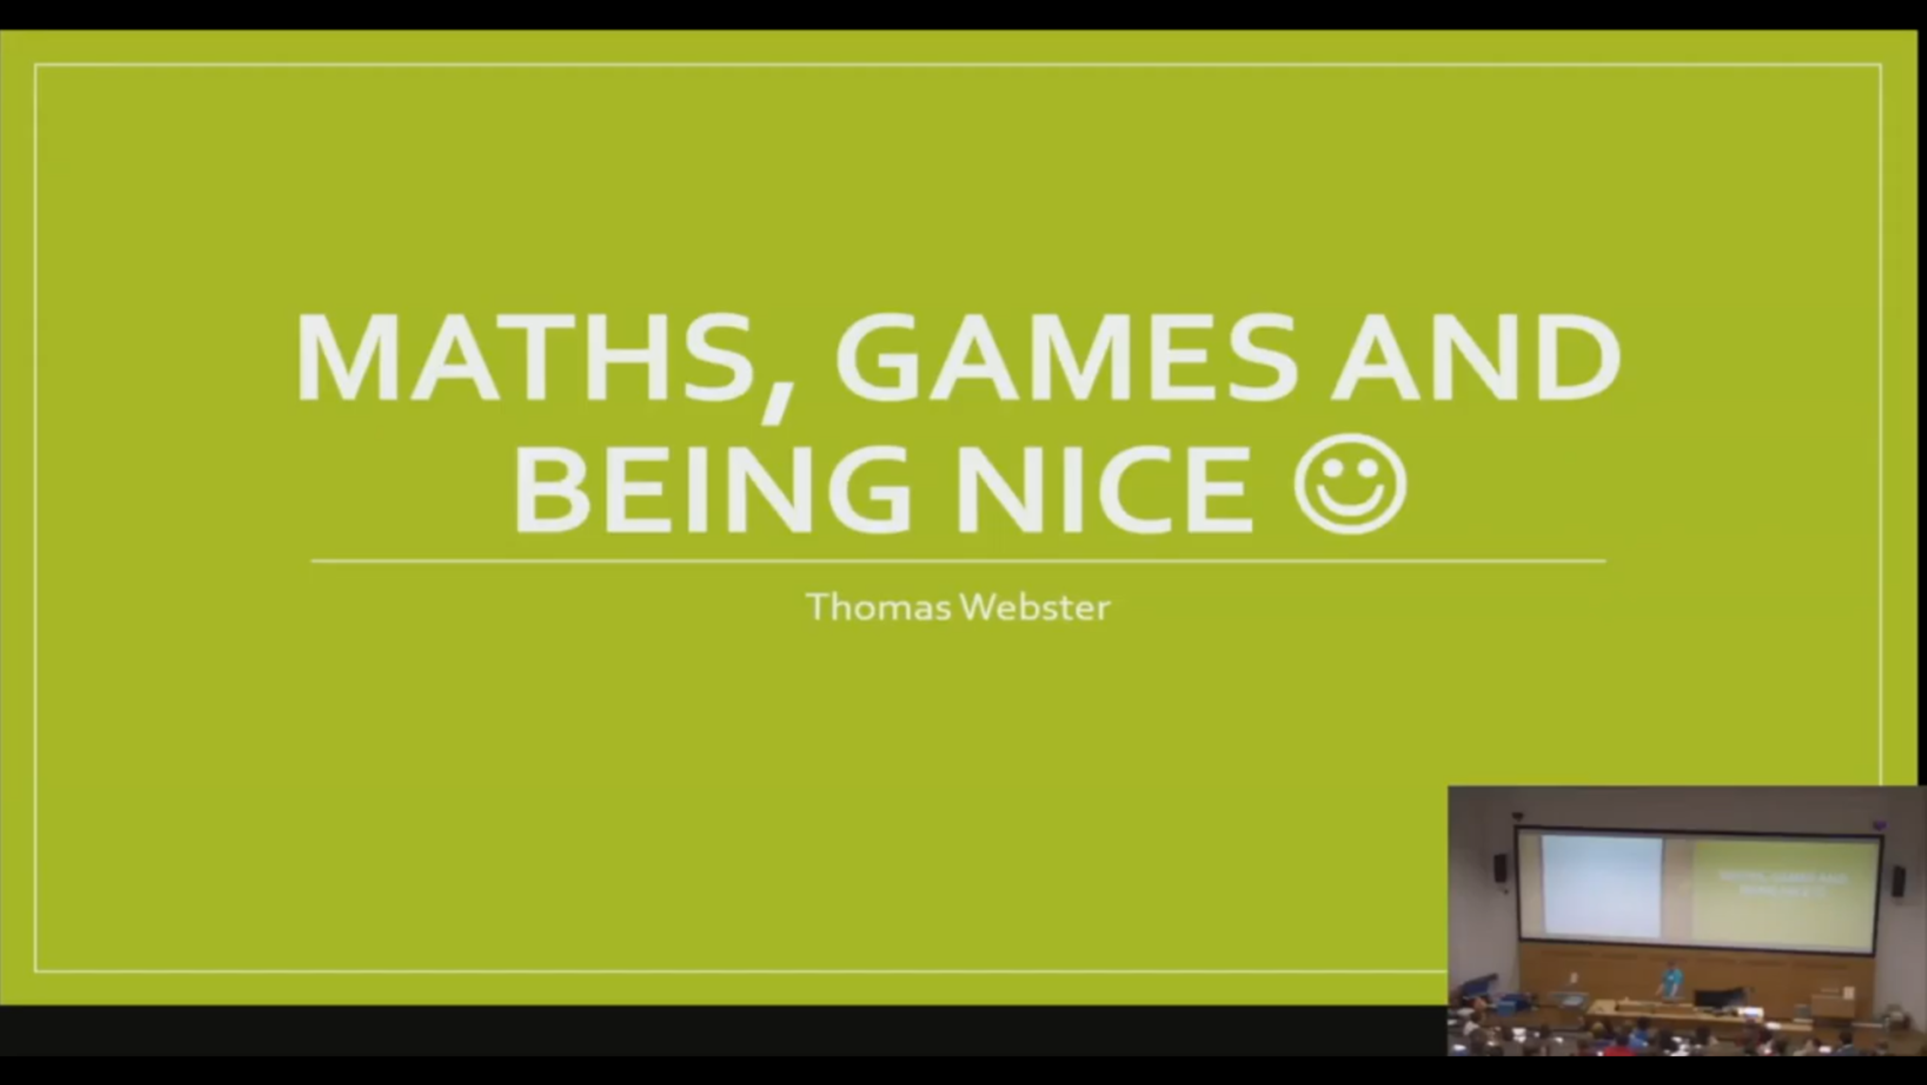 Games and the mathematics of being nice